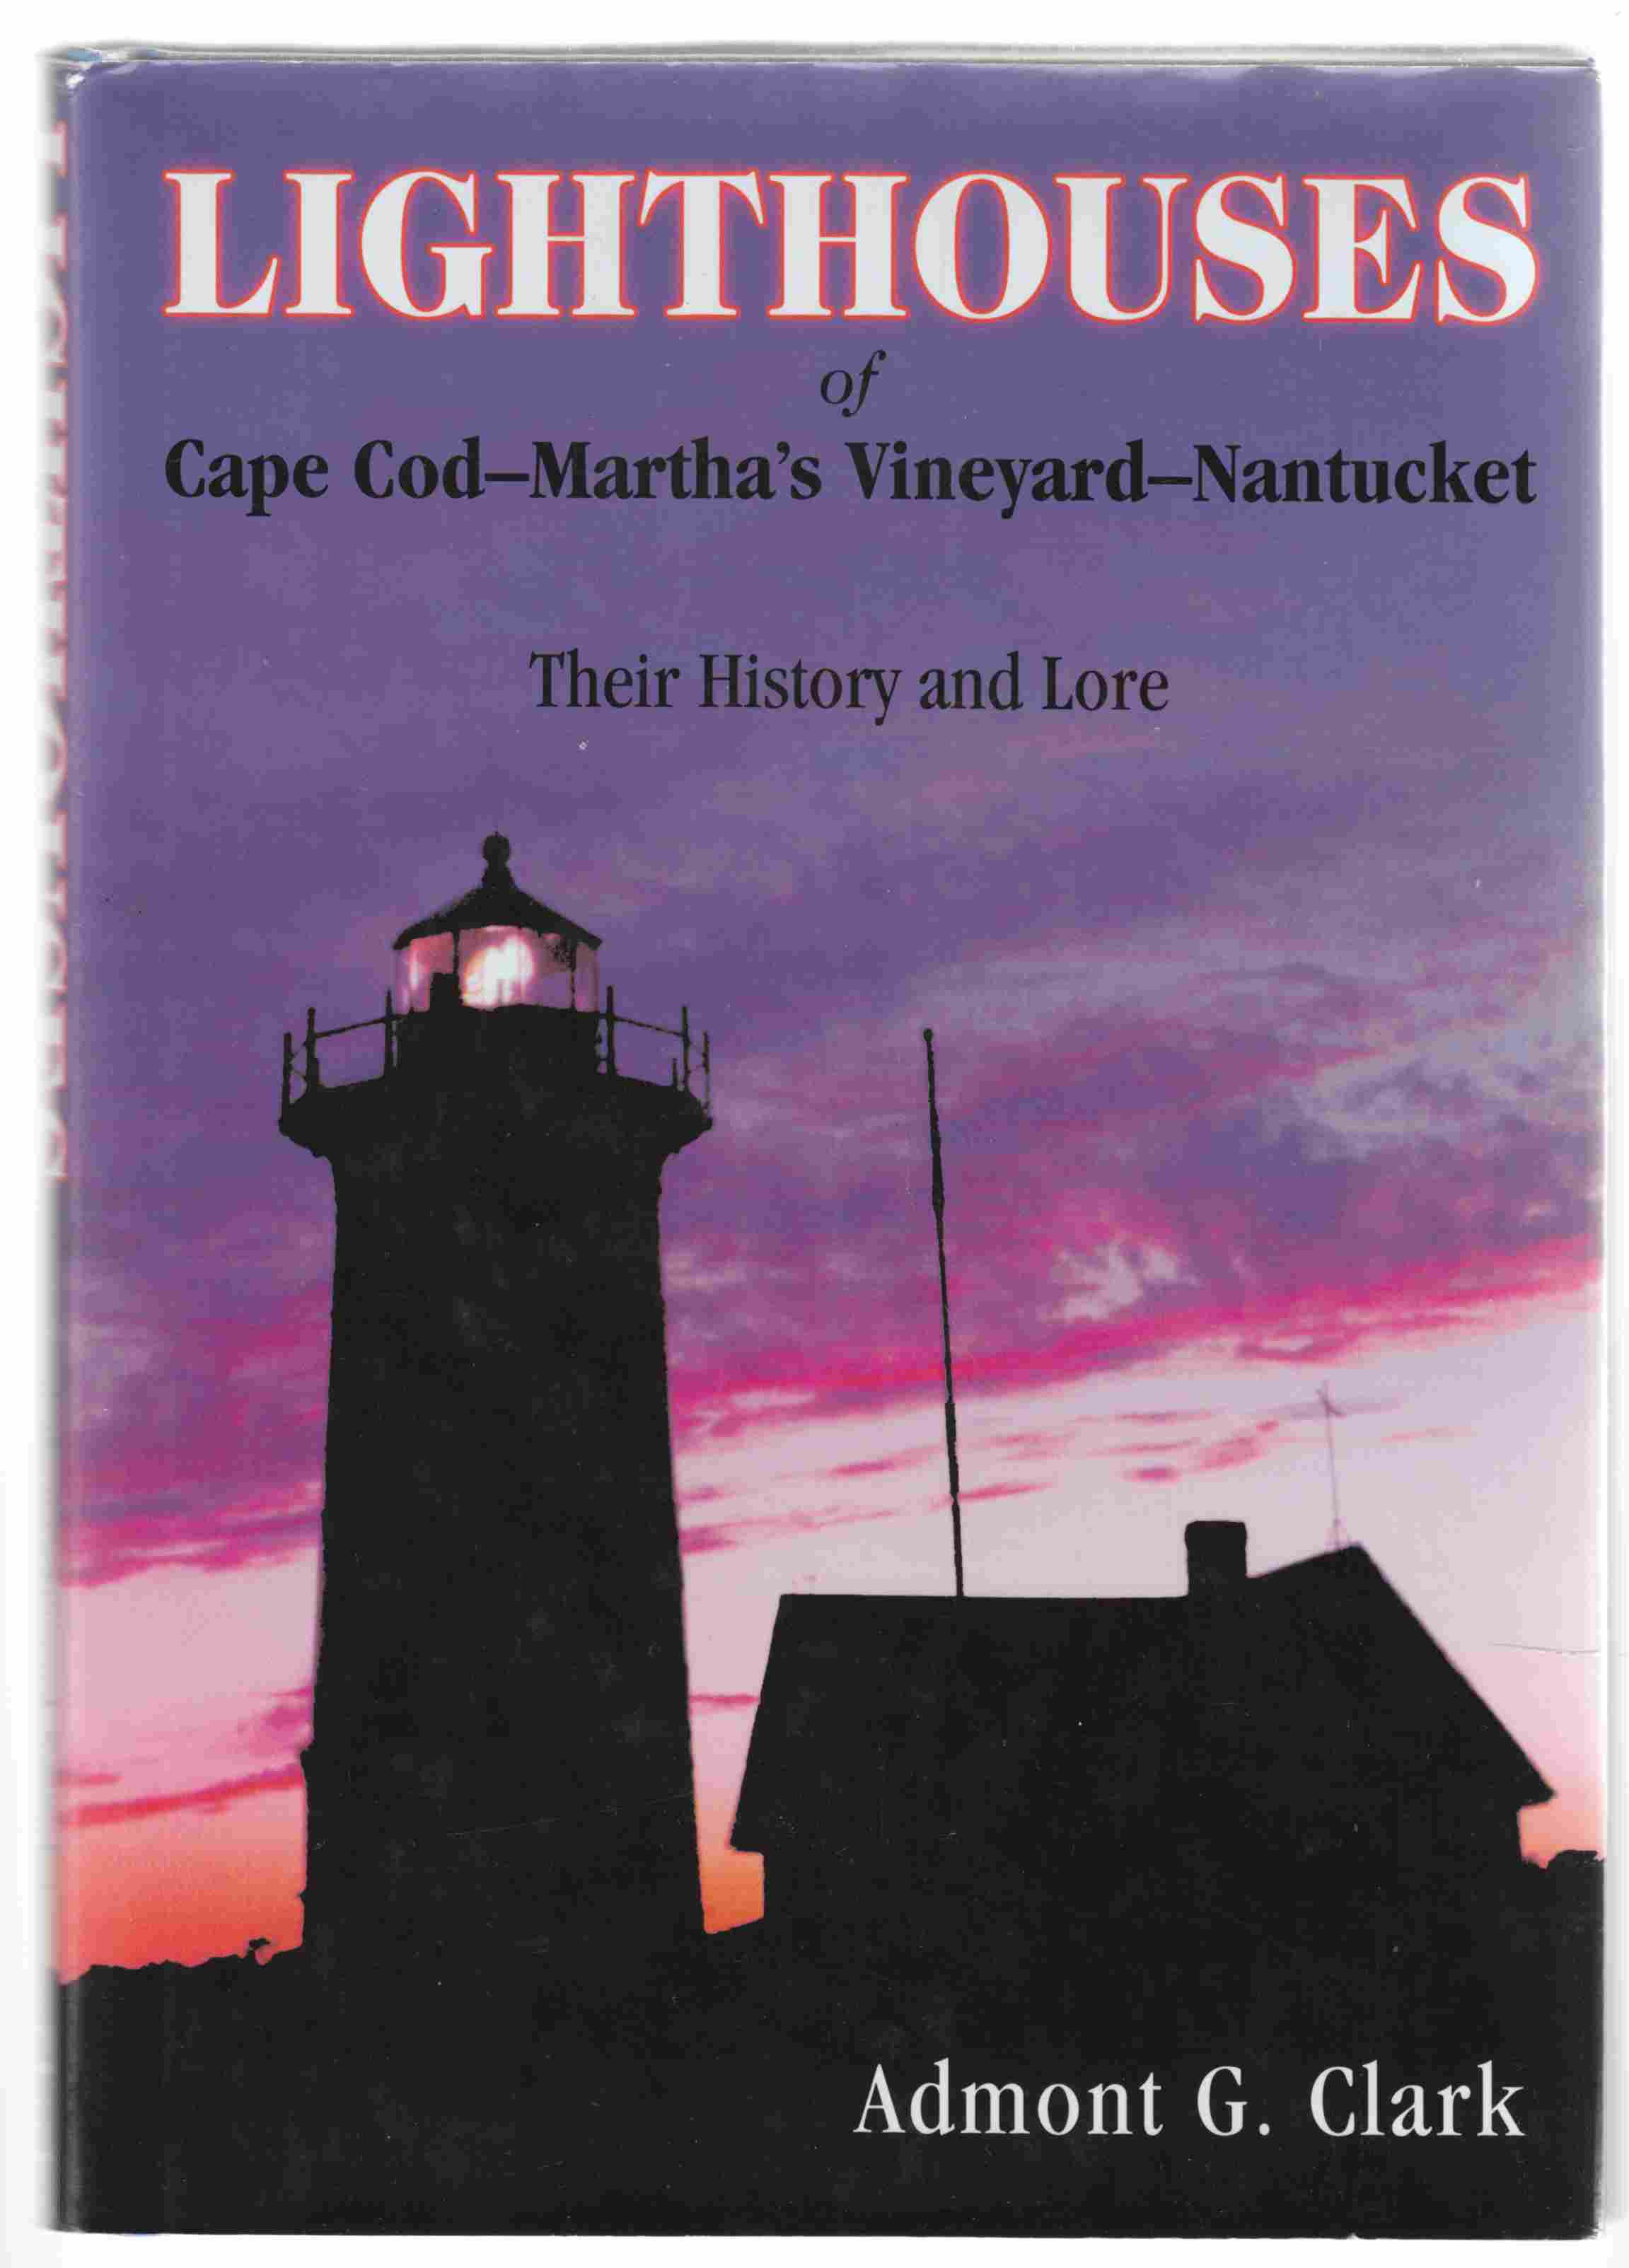 Image for Lighthouses of Cape Cod - Martha's Vineyard - Nantucket Their History and Lore